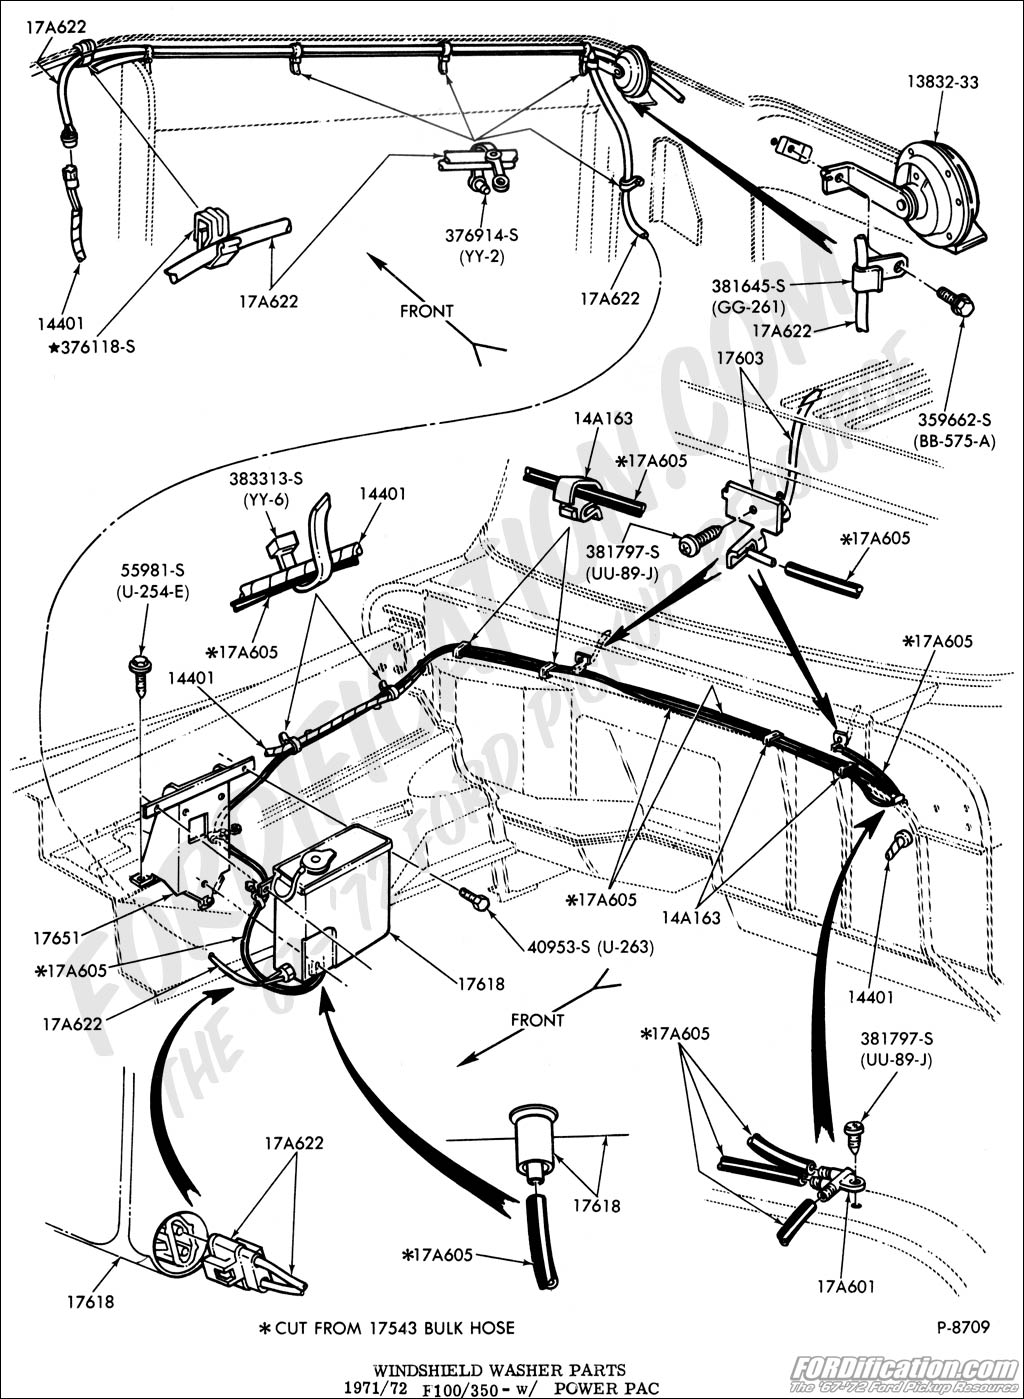 1972 Chevy Truck Wiper Motor Wiring Diagram Library 1980 Ford Technical Drawings And Schematics Section I Electrical